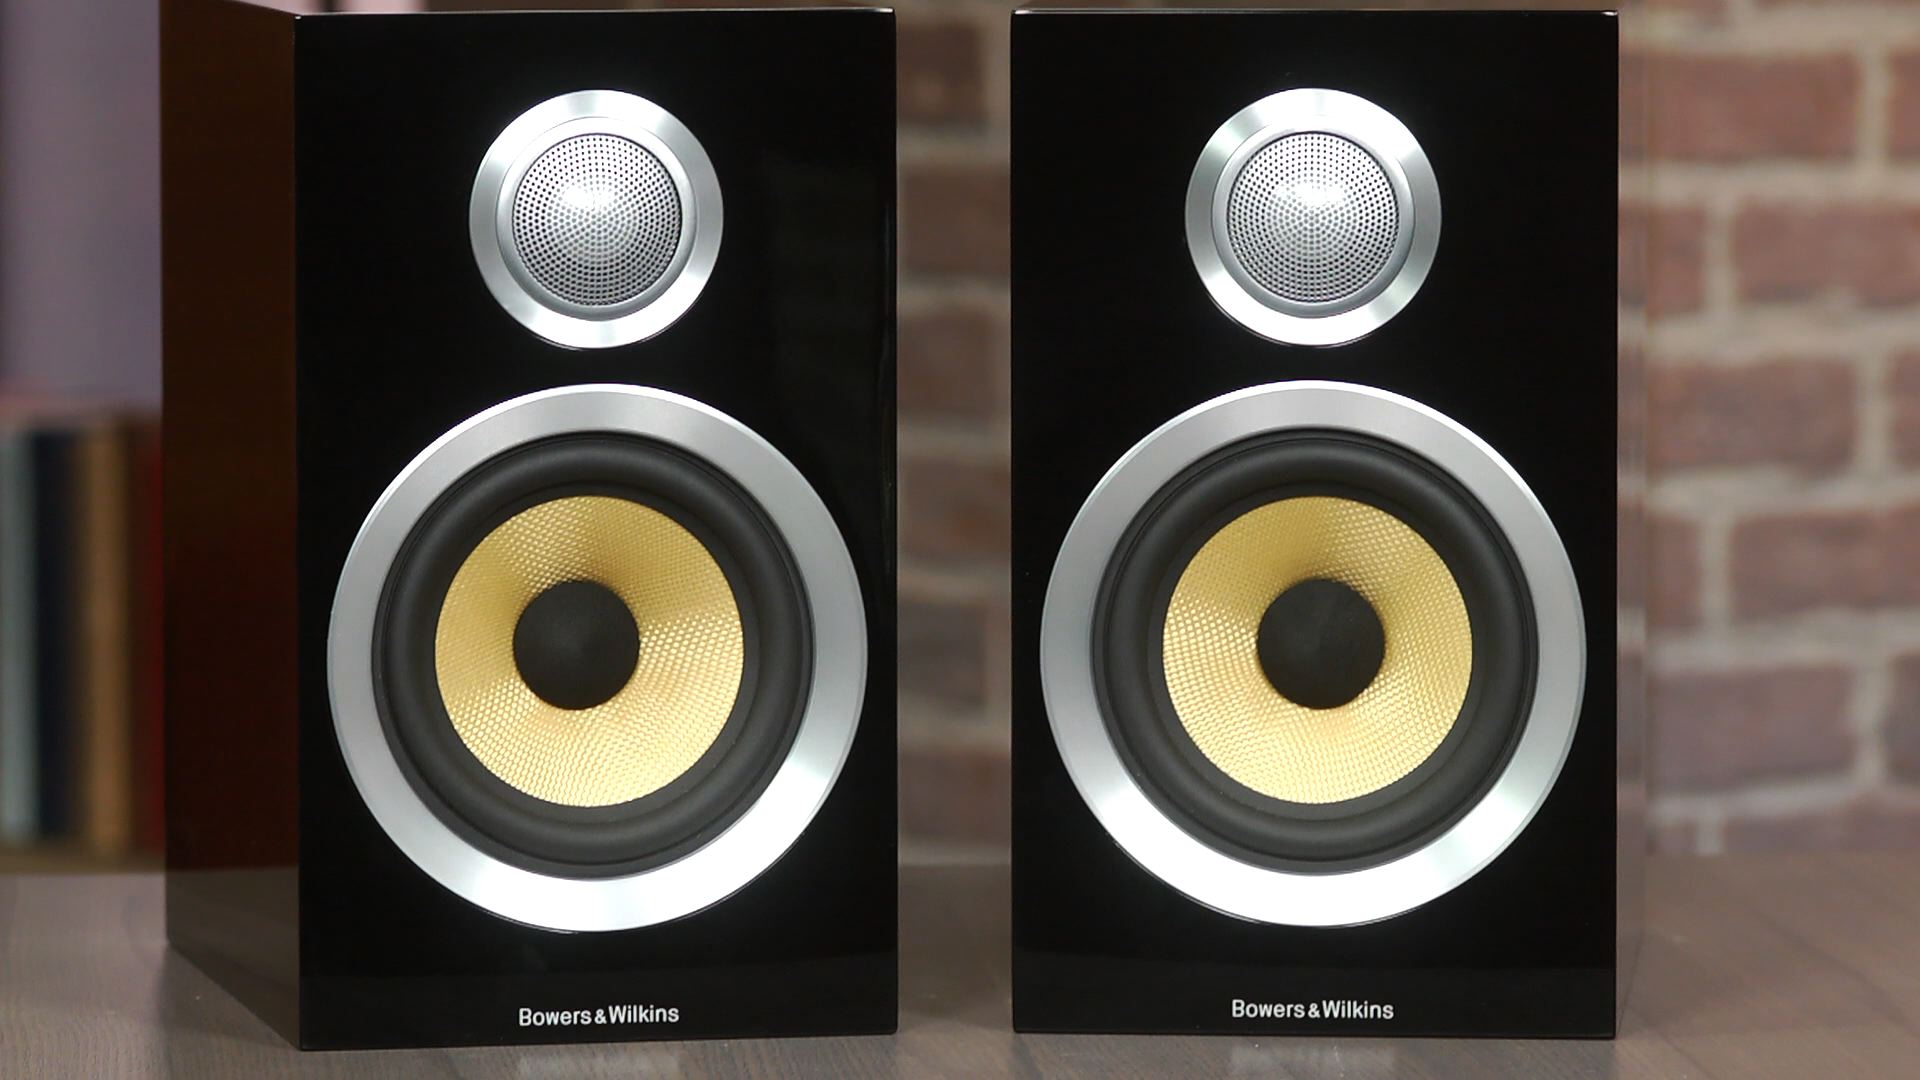 Video: The Bowers and Wilkins CM1 speakers look great